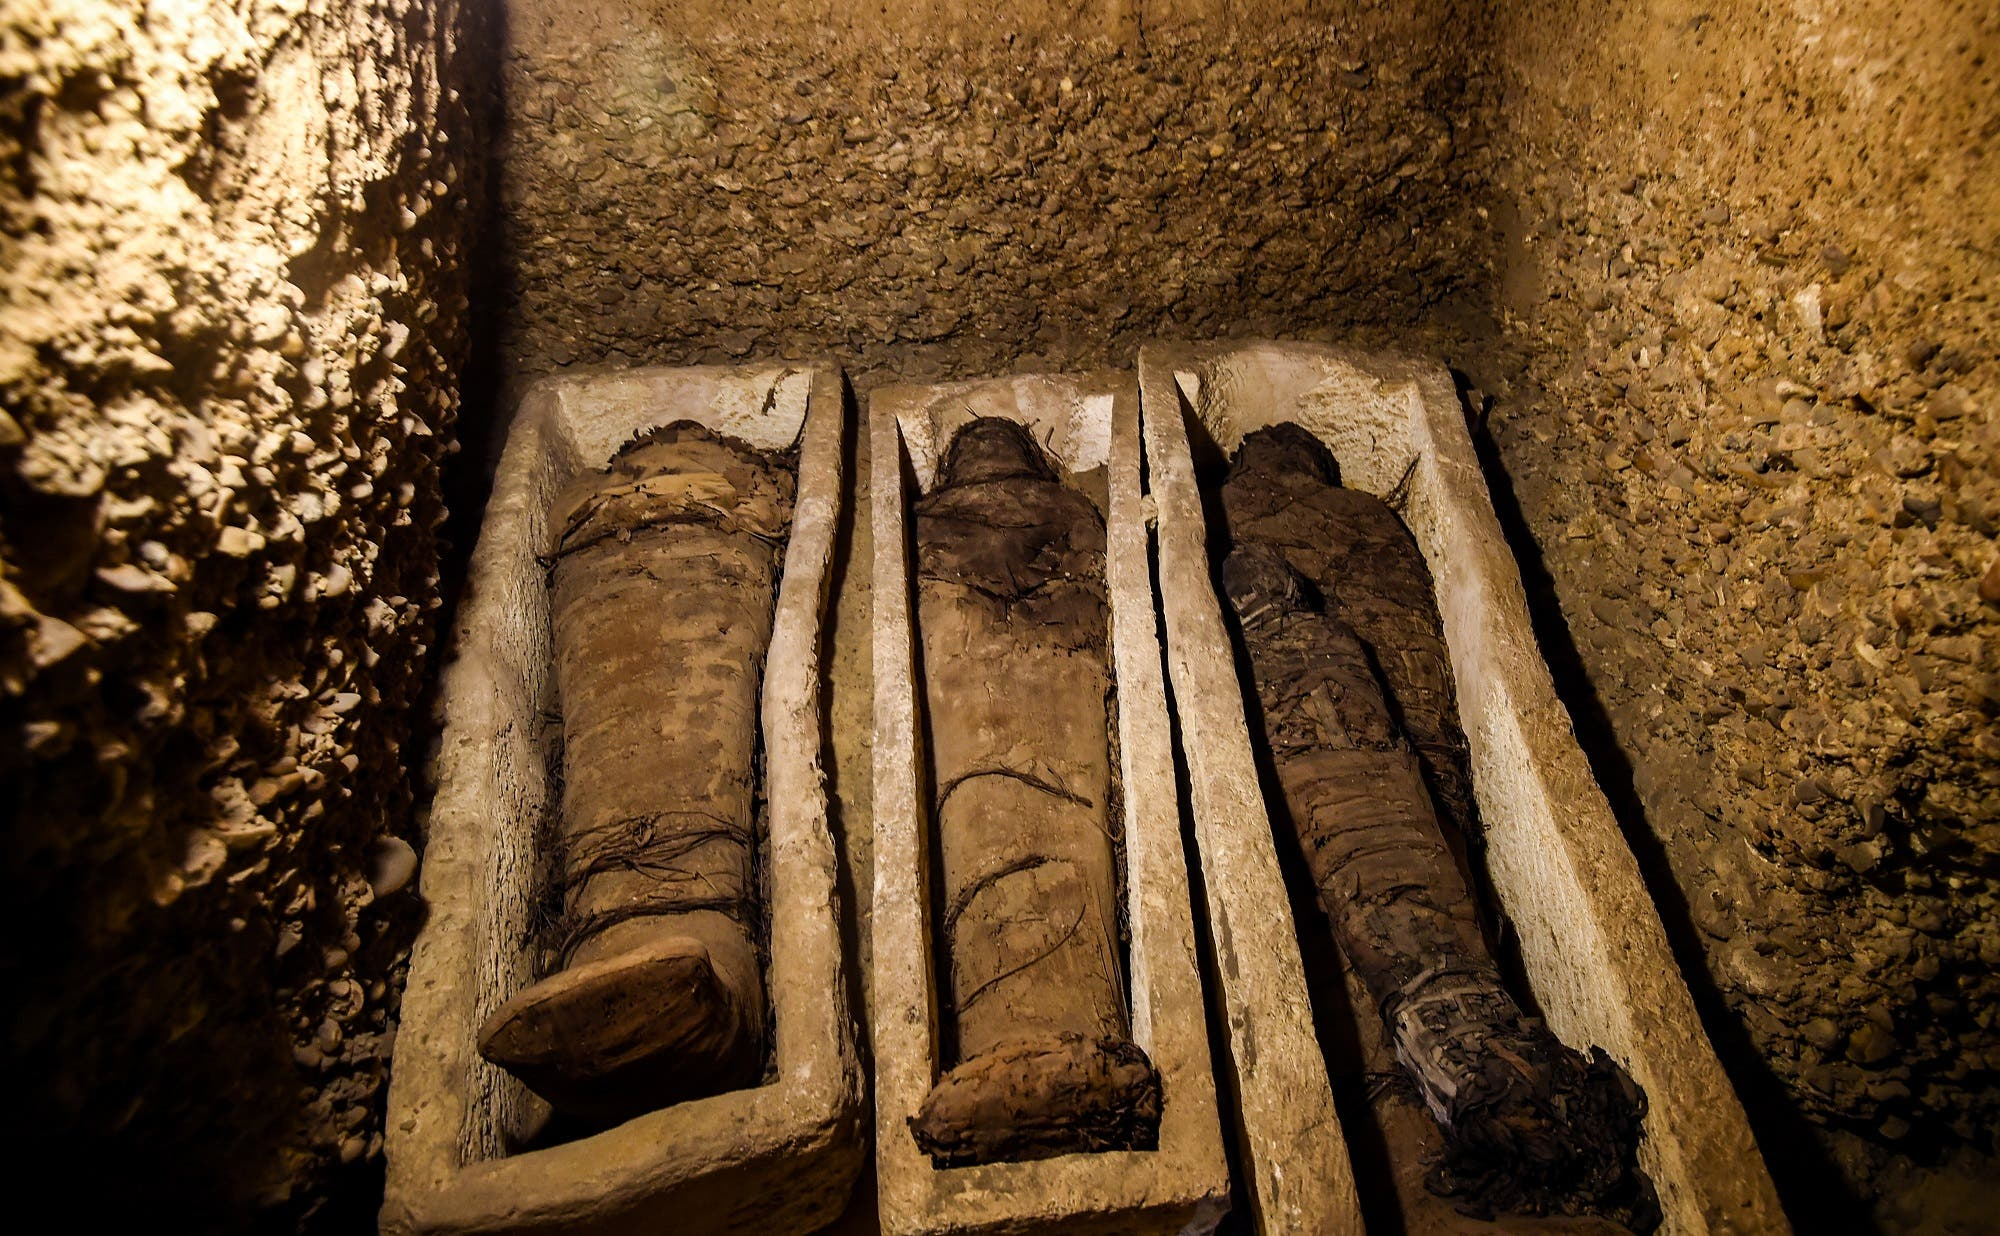 Some of the mummies were found wrapped in linen while others were placed in stone coffins or wooden sarcophagi. (AFP)